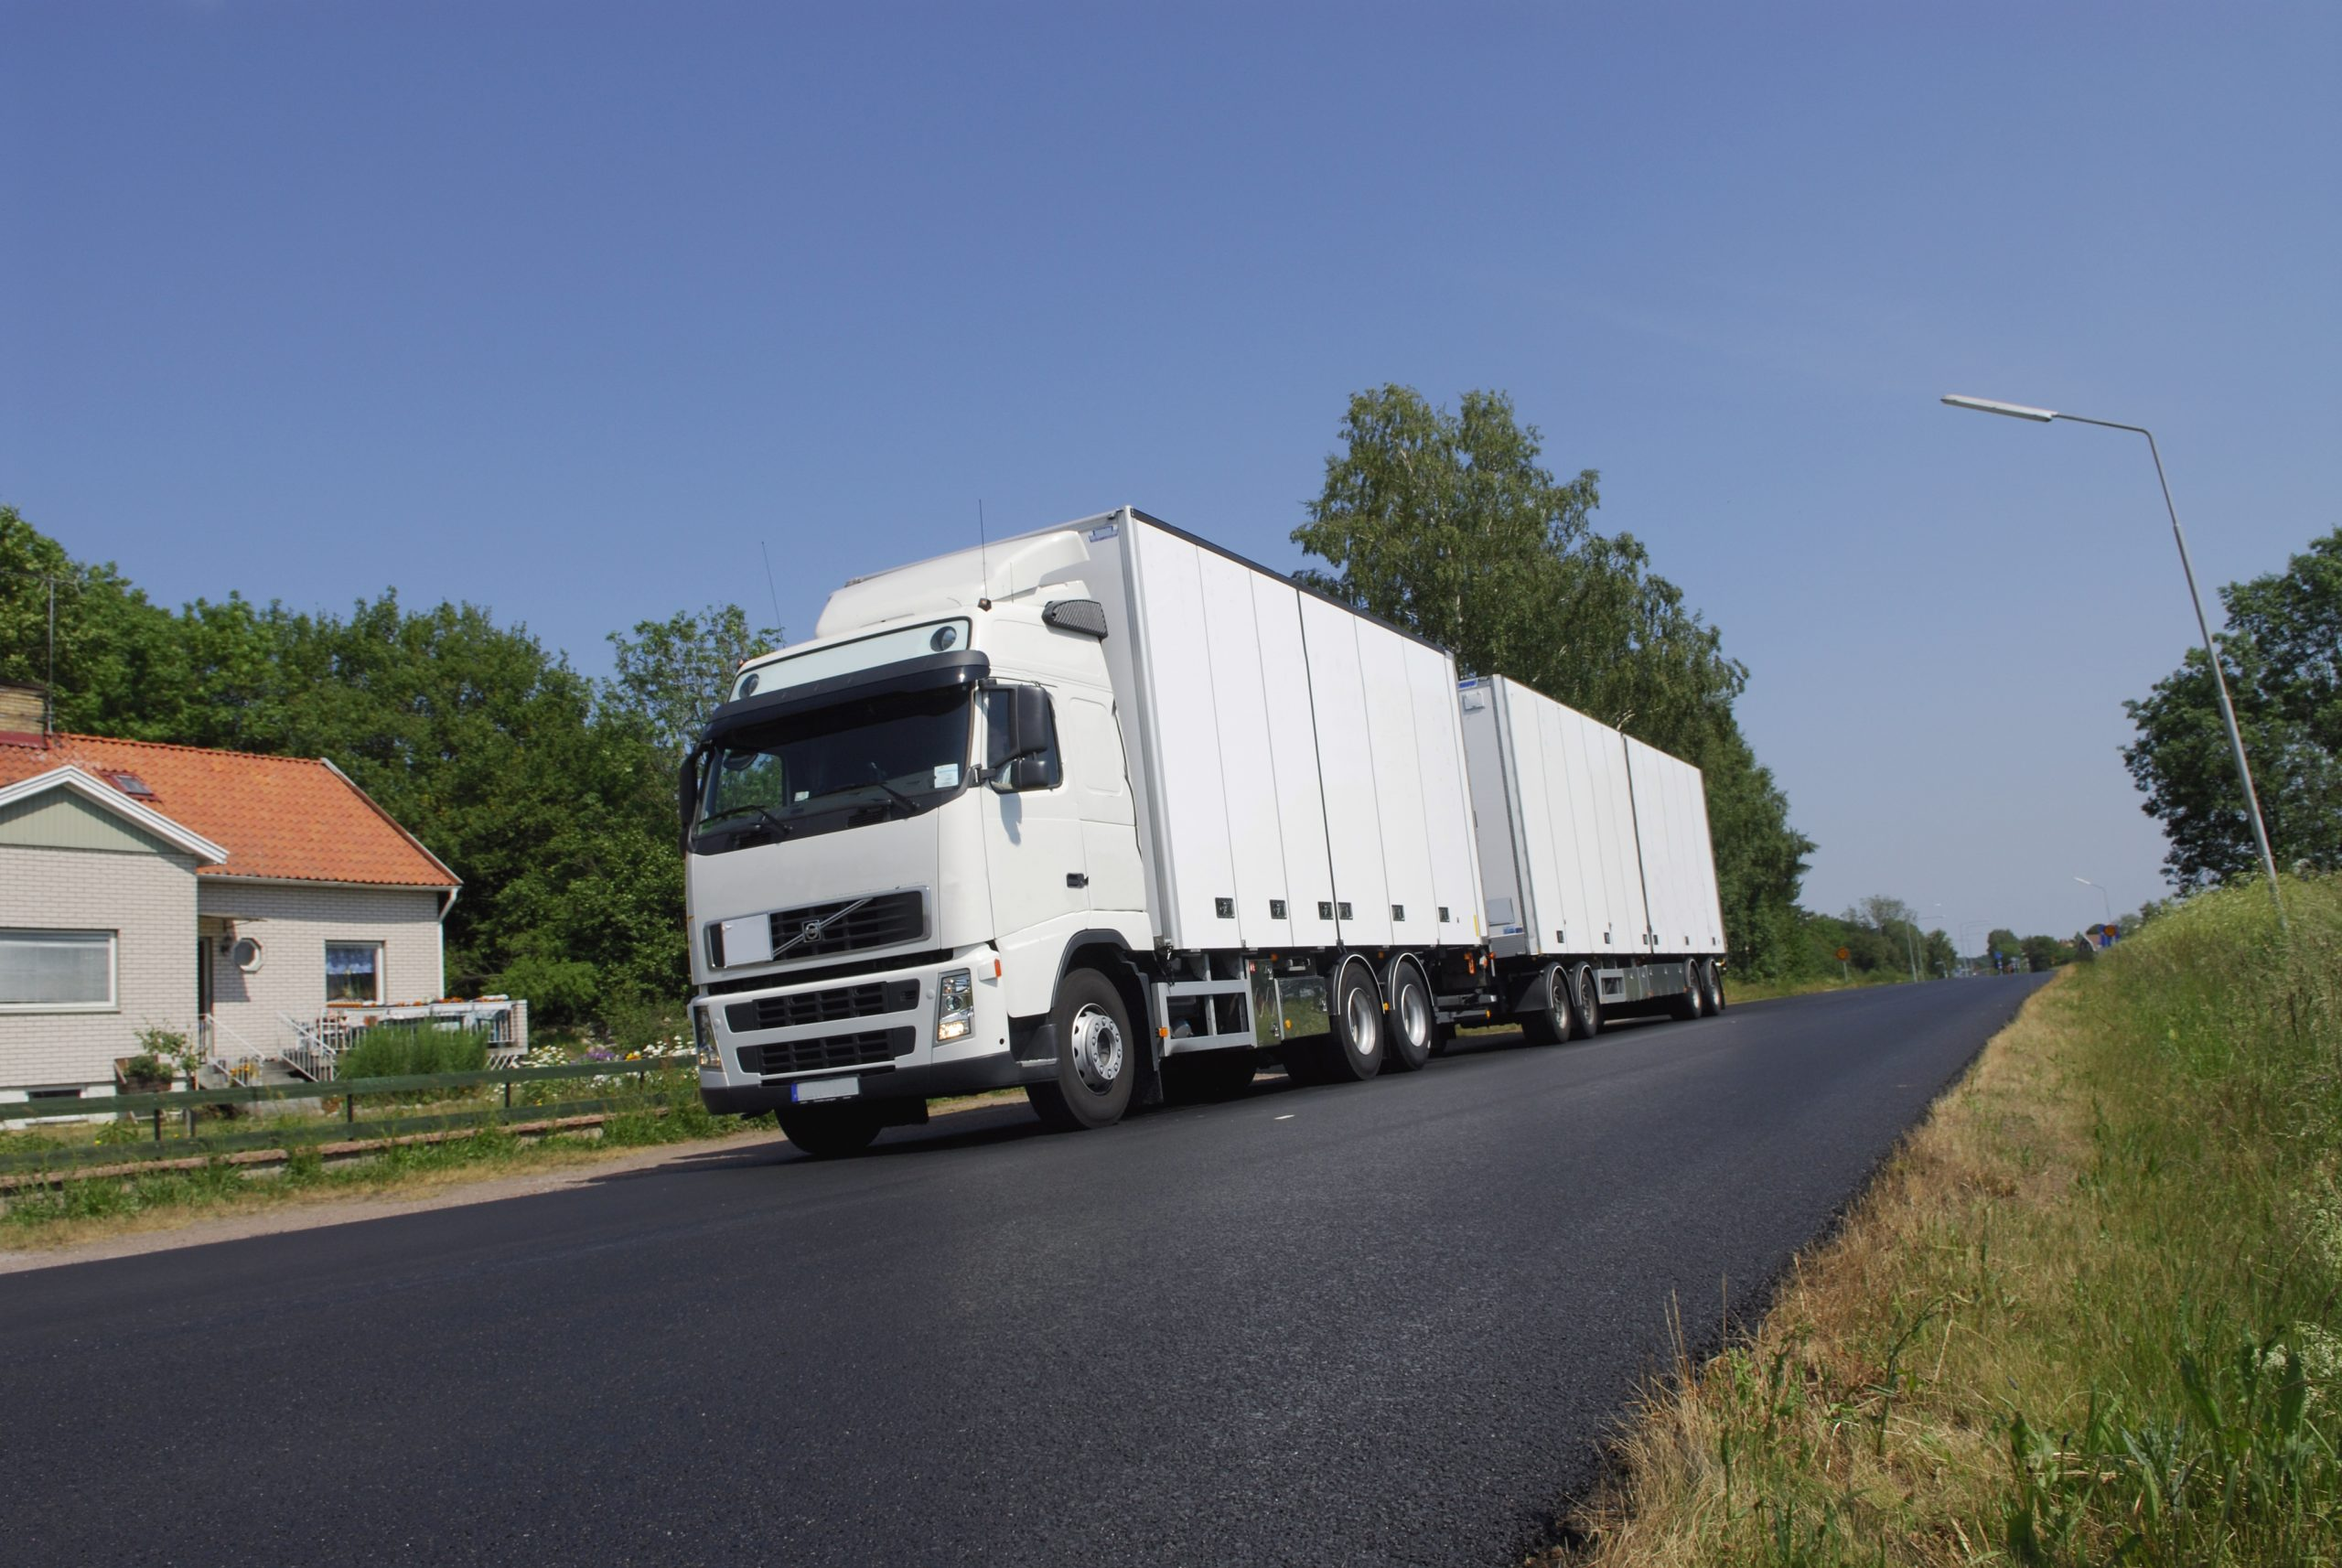 Urgent action needed to avoid effects of HGV driver shortages